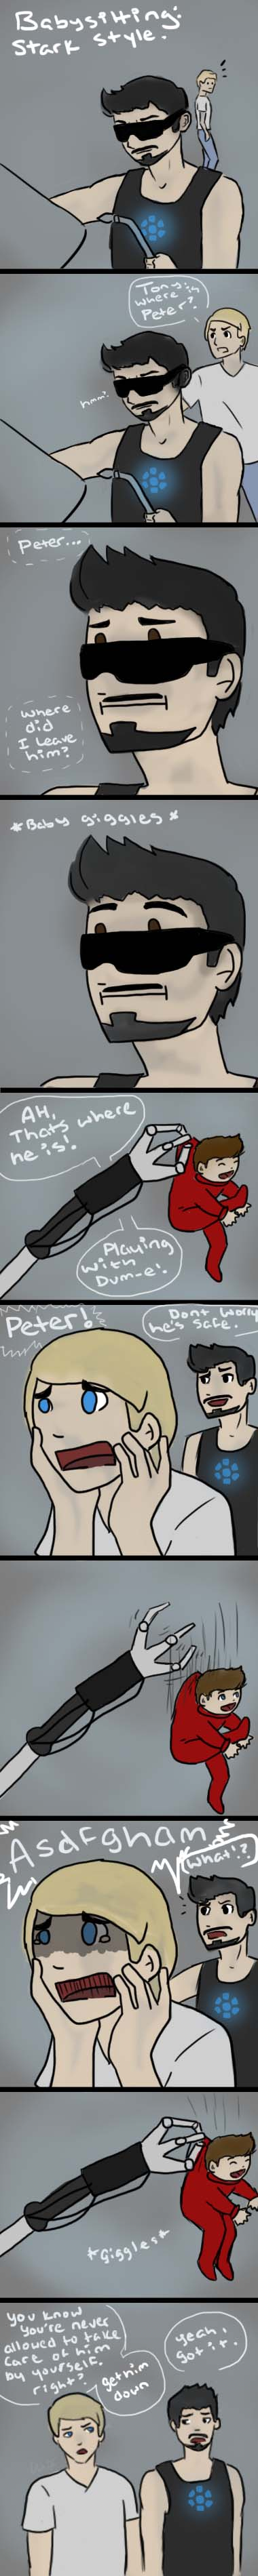 Superfamily! by AKA-chan07